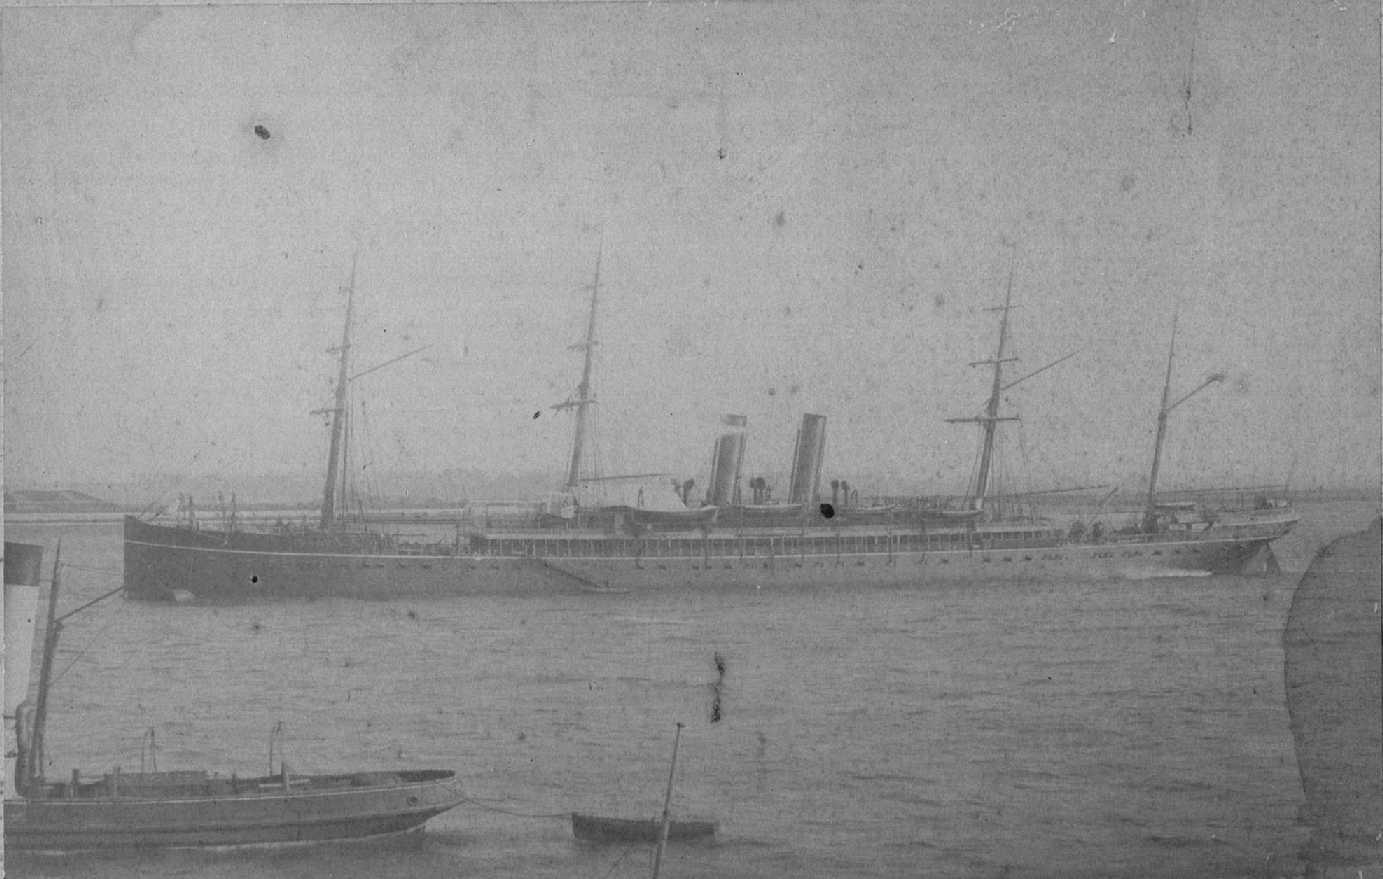 """Passenger Liner """"Carthage"""", built in 1881 of iron due to the scarcity of steel.  Built for the P&O company """"Carthage"""" and """"Rome"""" were the first P&O ships over 5,000 ton gross and were designed for the Australian trade, their passenger accomodation was ami"""